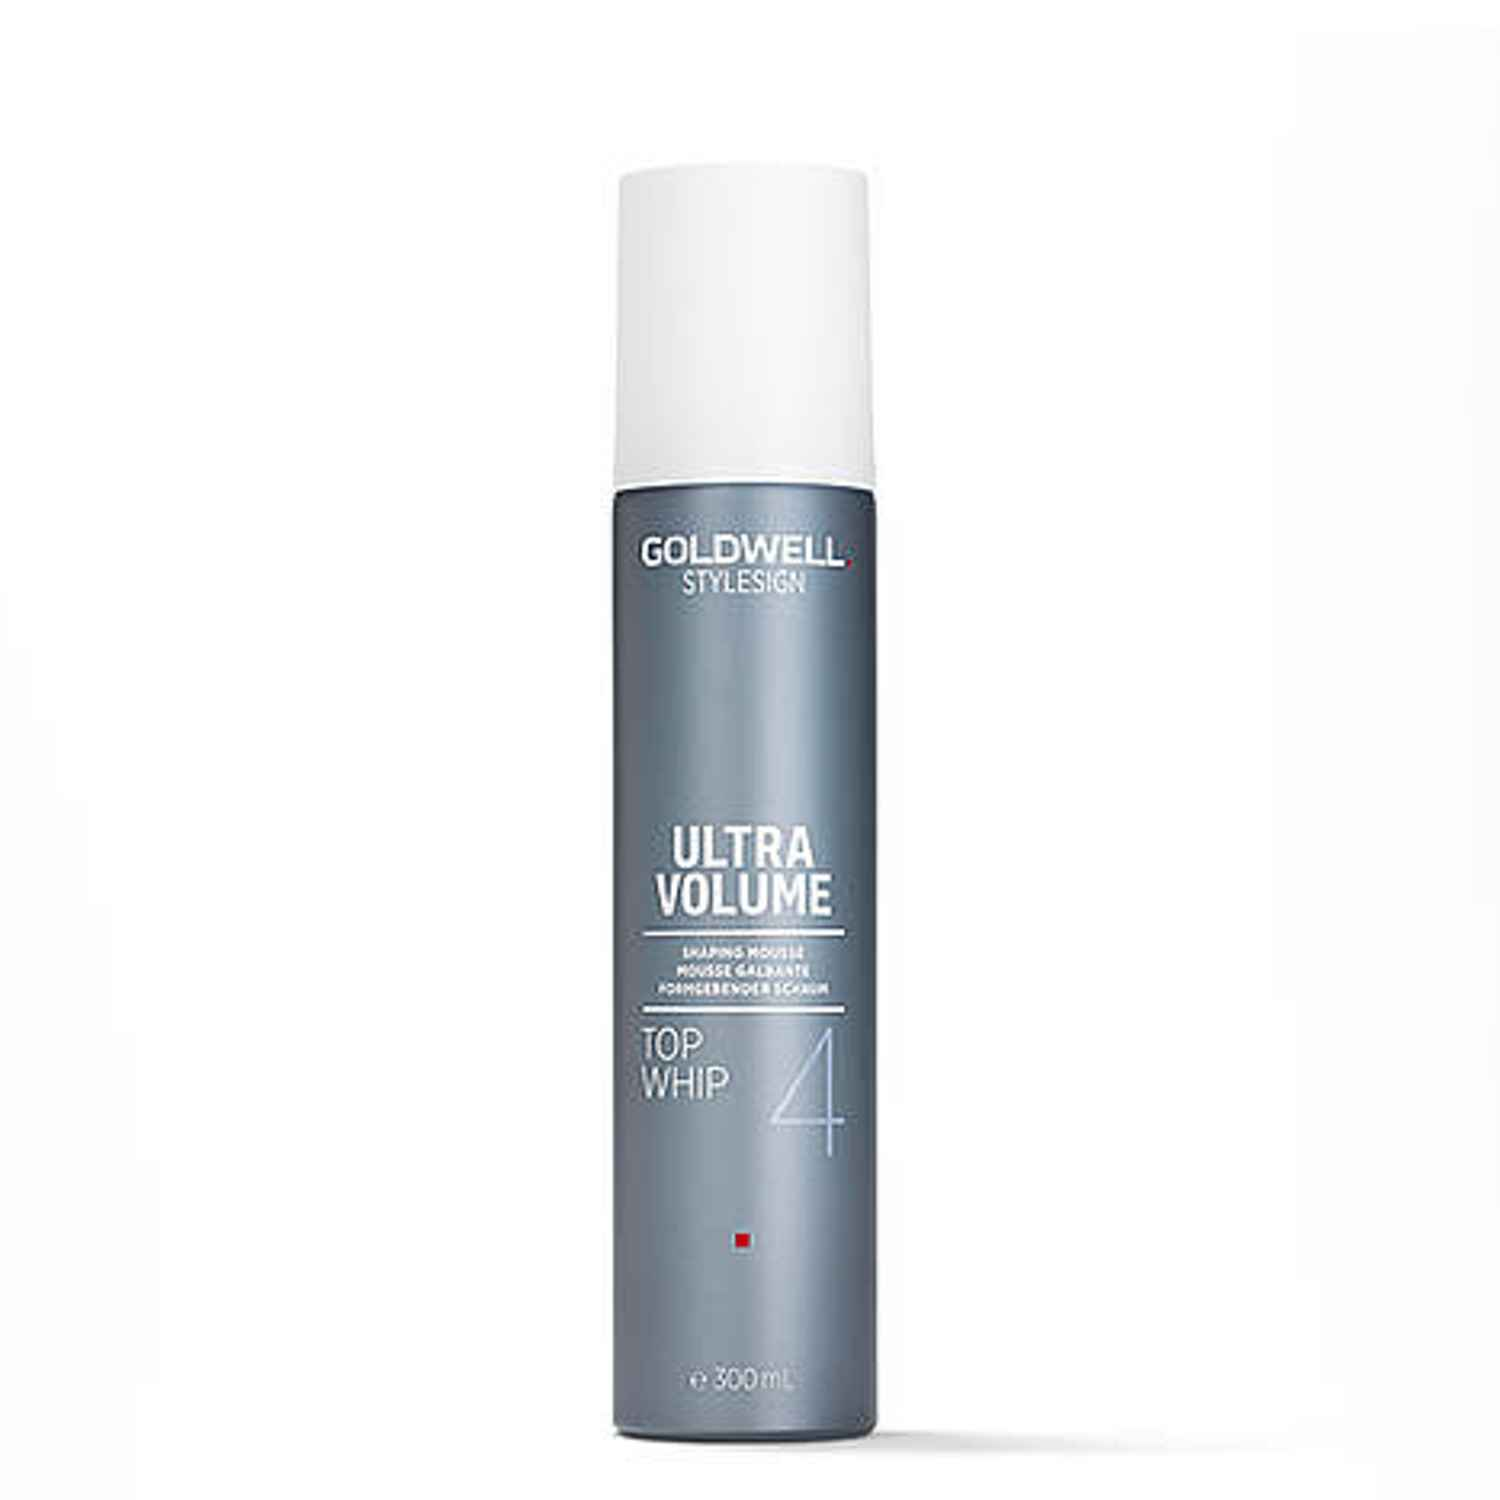 GOLDWELL Style Sign Ultra Volume TOP WHIP 300 ml